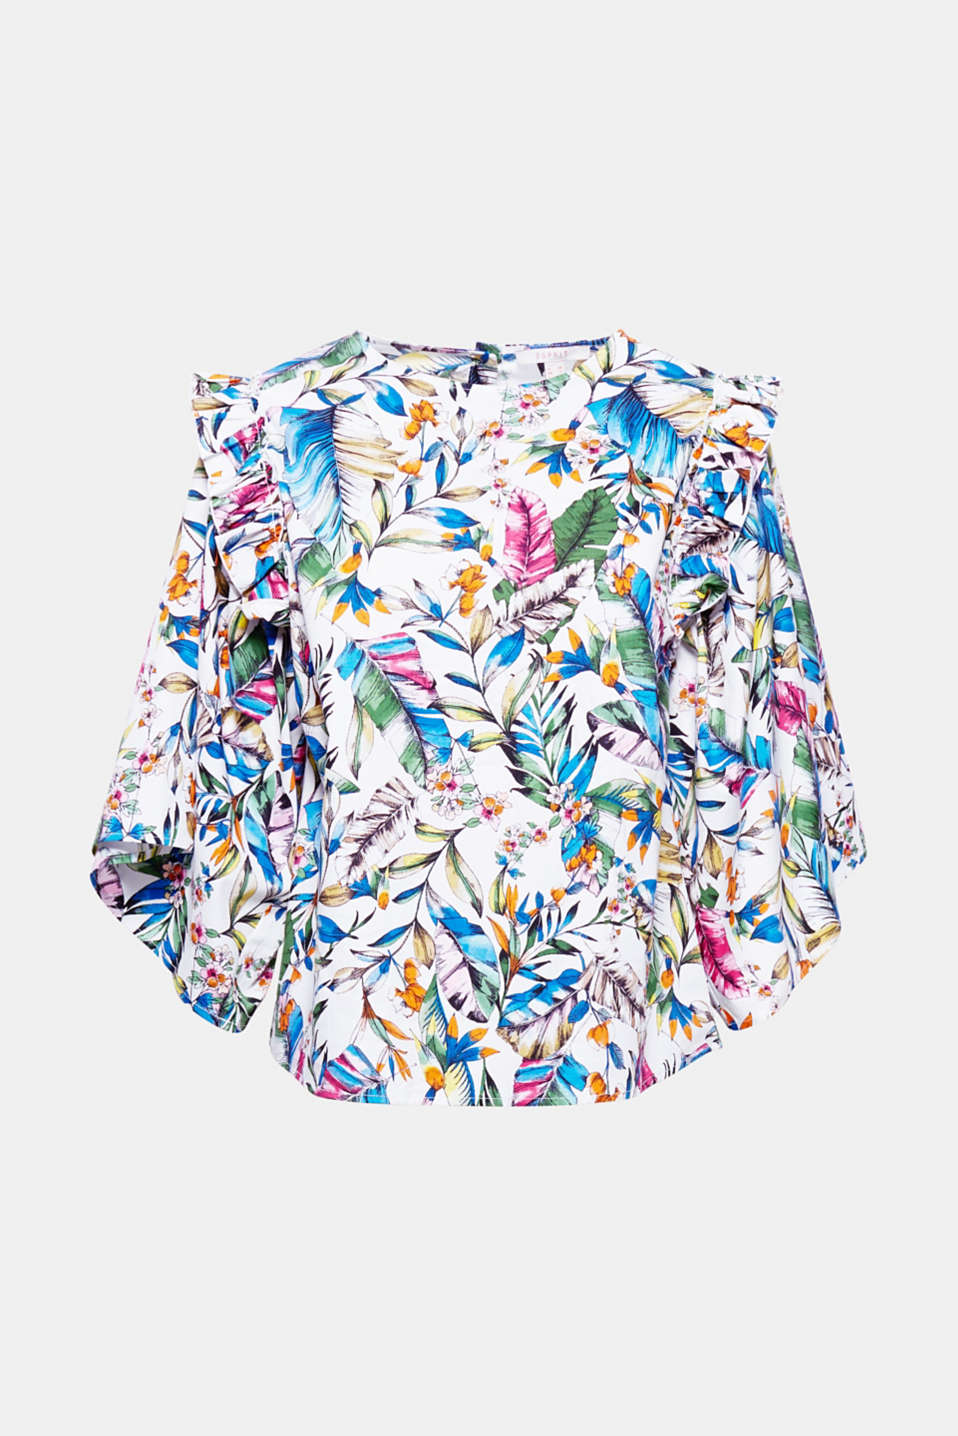 Summery colours make this stretch blouse with extra wide sleeves and decorative frills a stylish fashion piece!